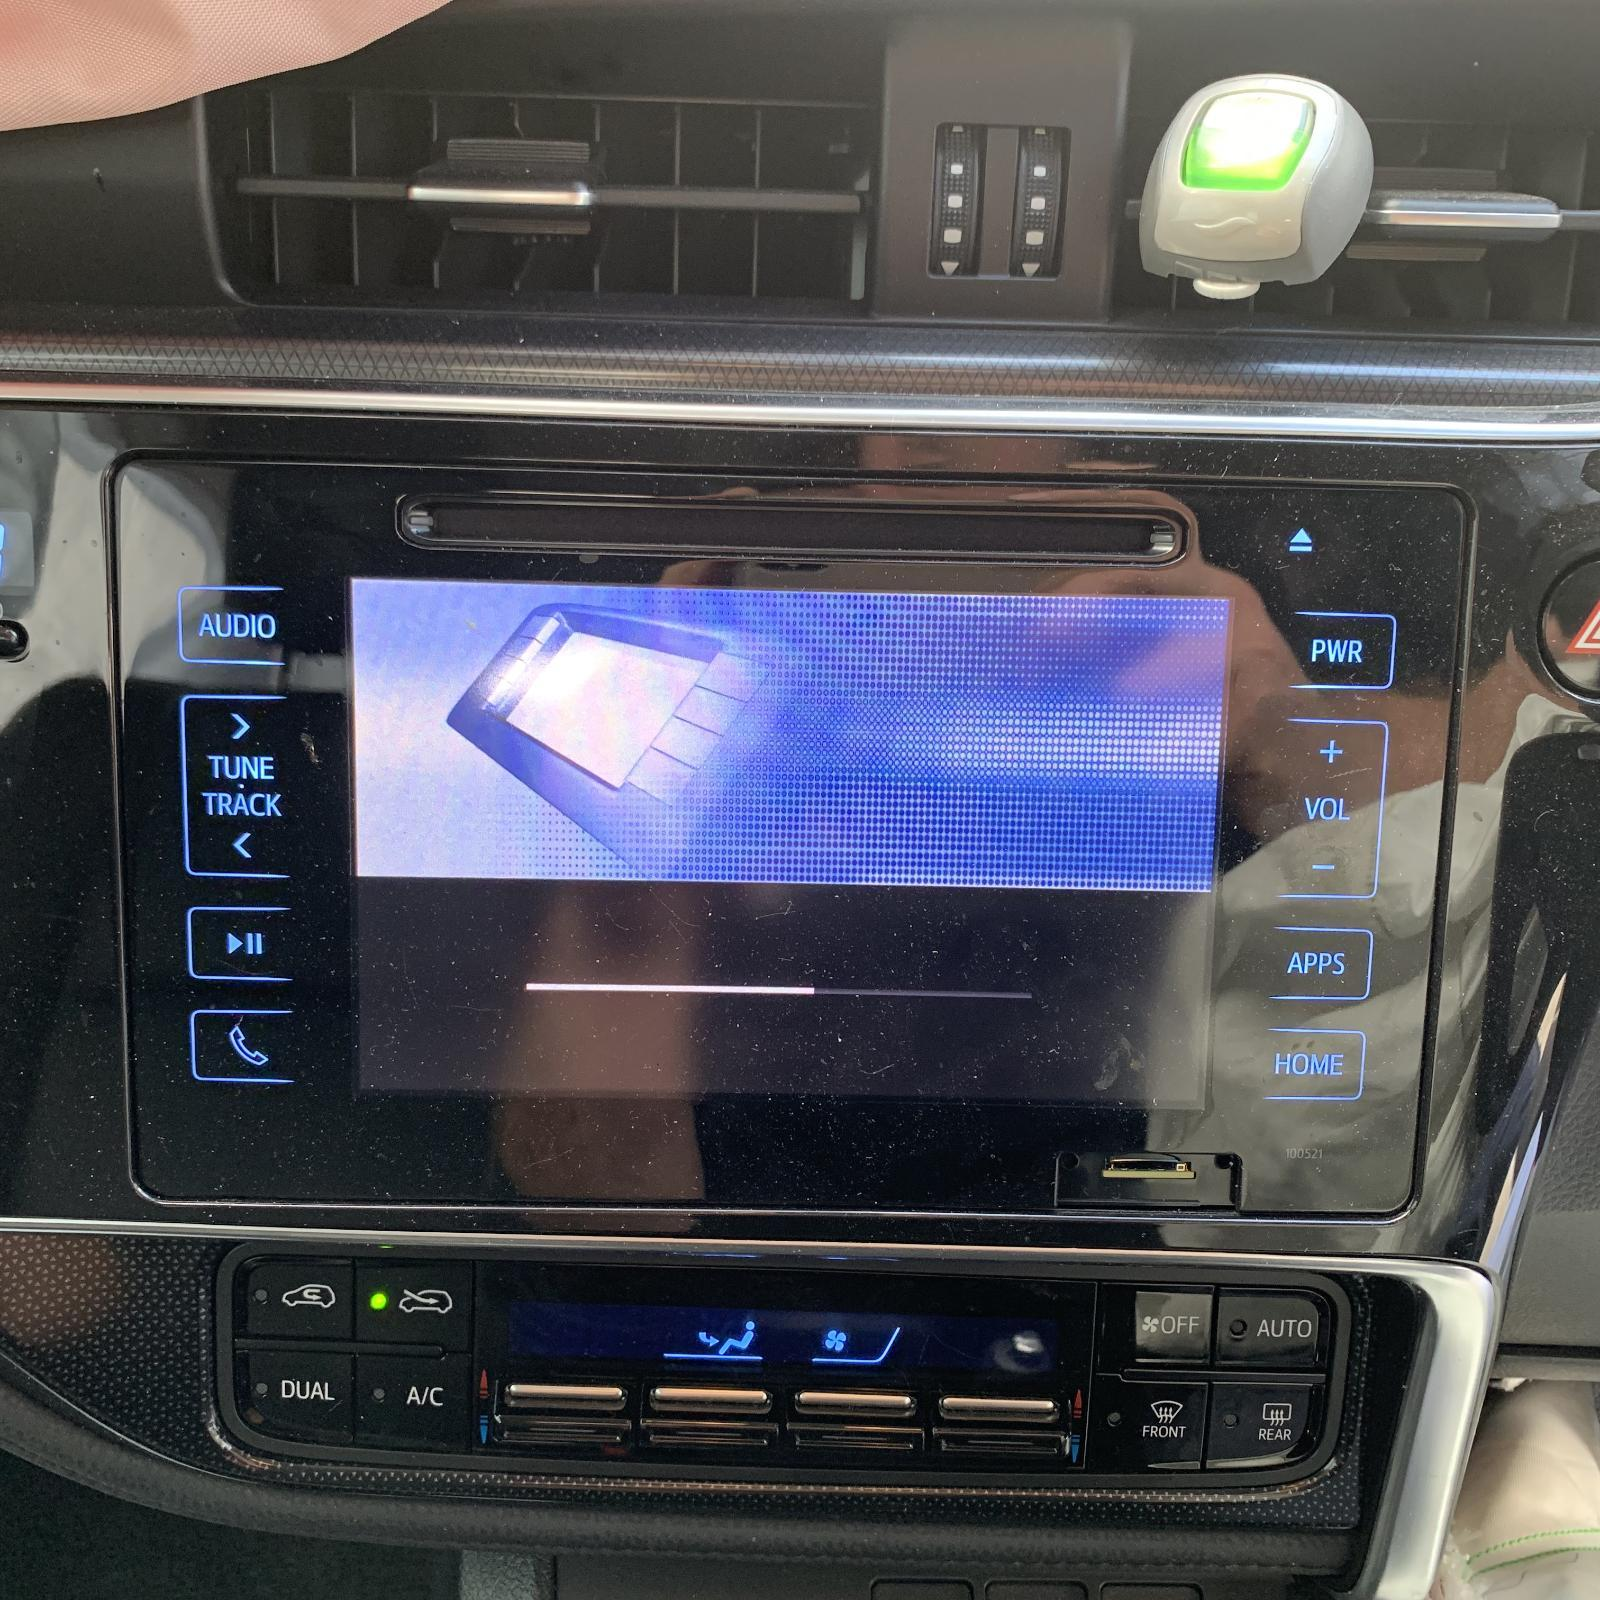 TOYOTA COROLLA, Radio/Cd/Dvd/Sat/Tv, 7IN TOUCH SCREEN (P/N ON FACE 100521), ZRE182R, HATCH, 03/15-